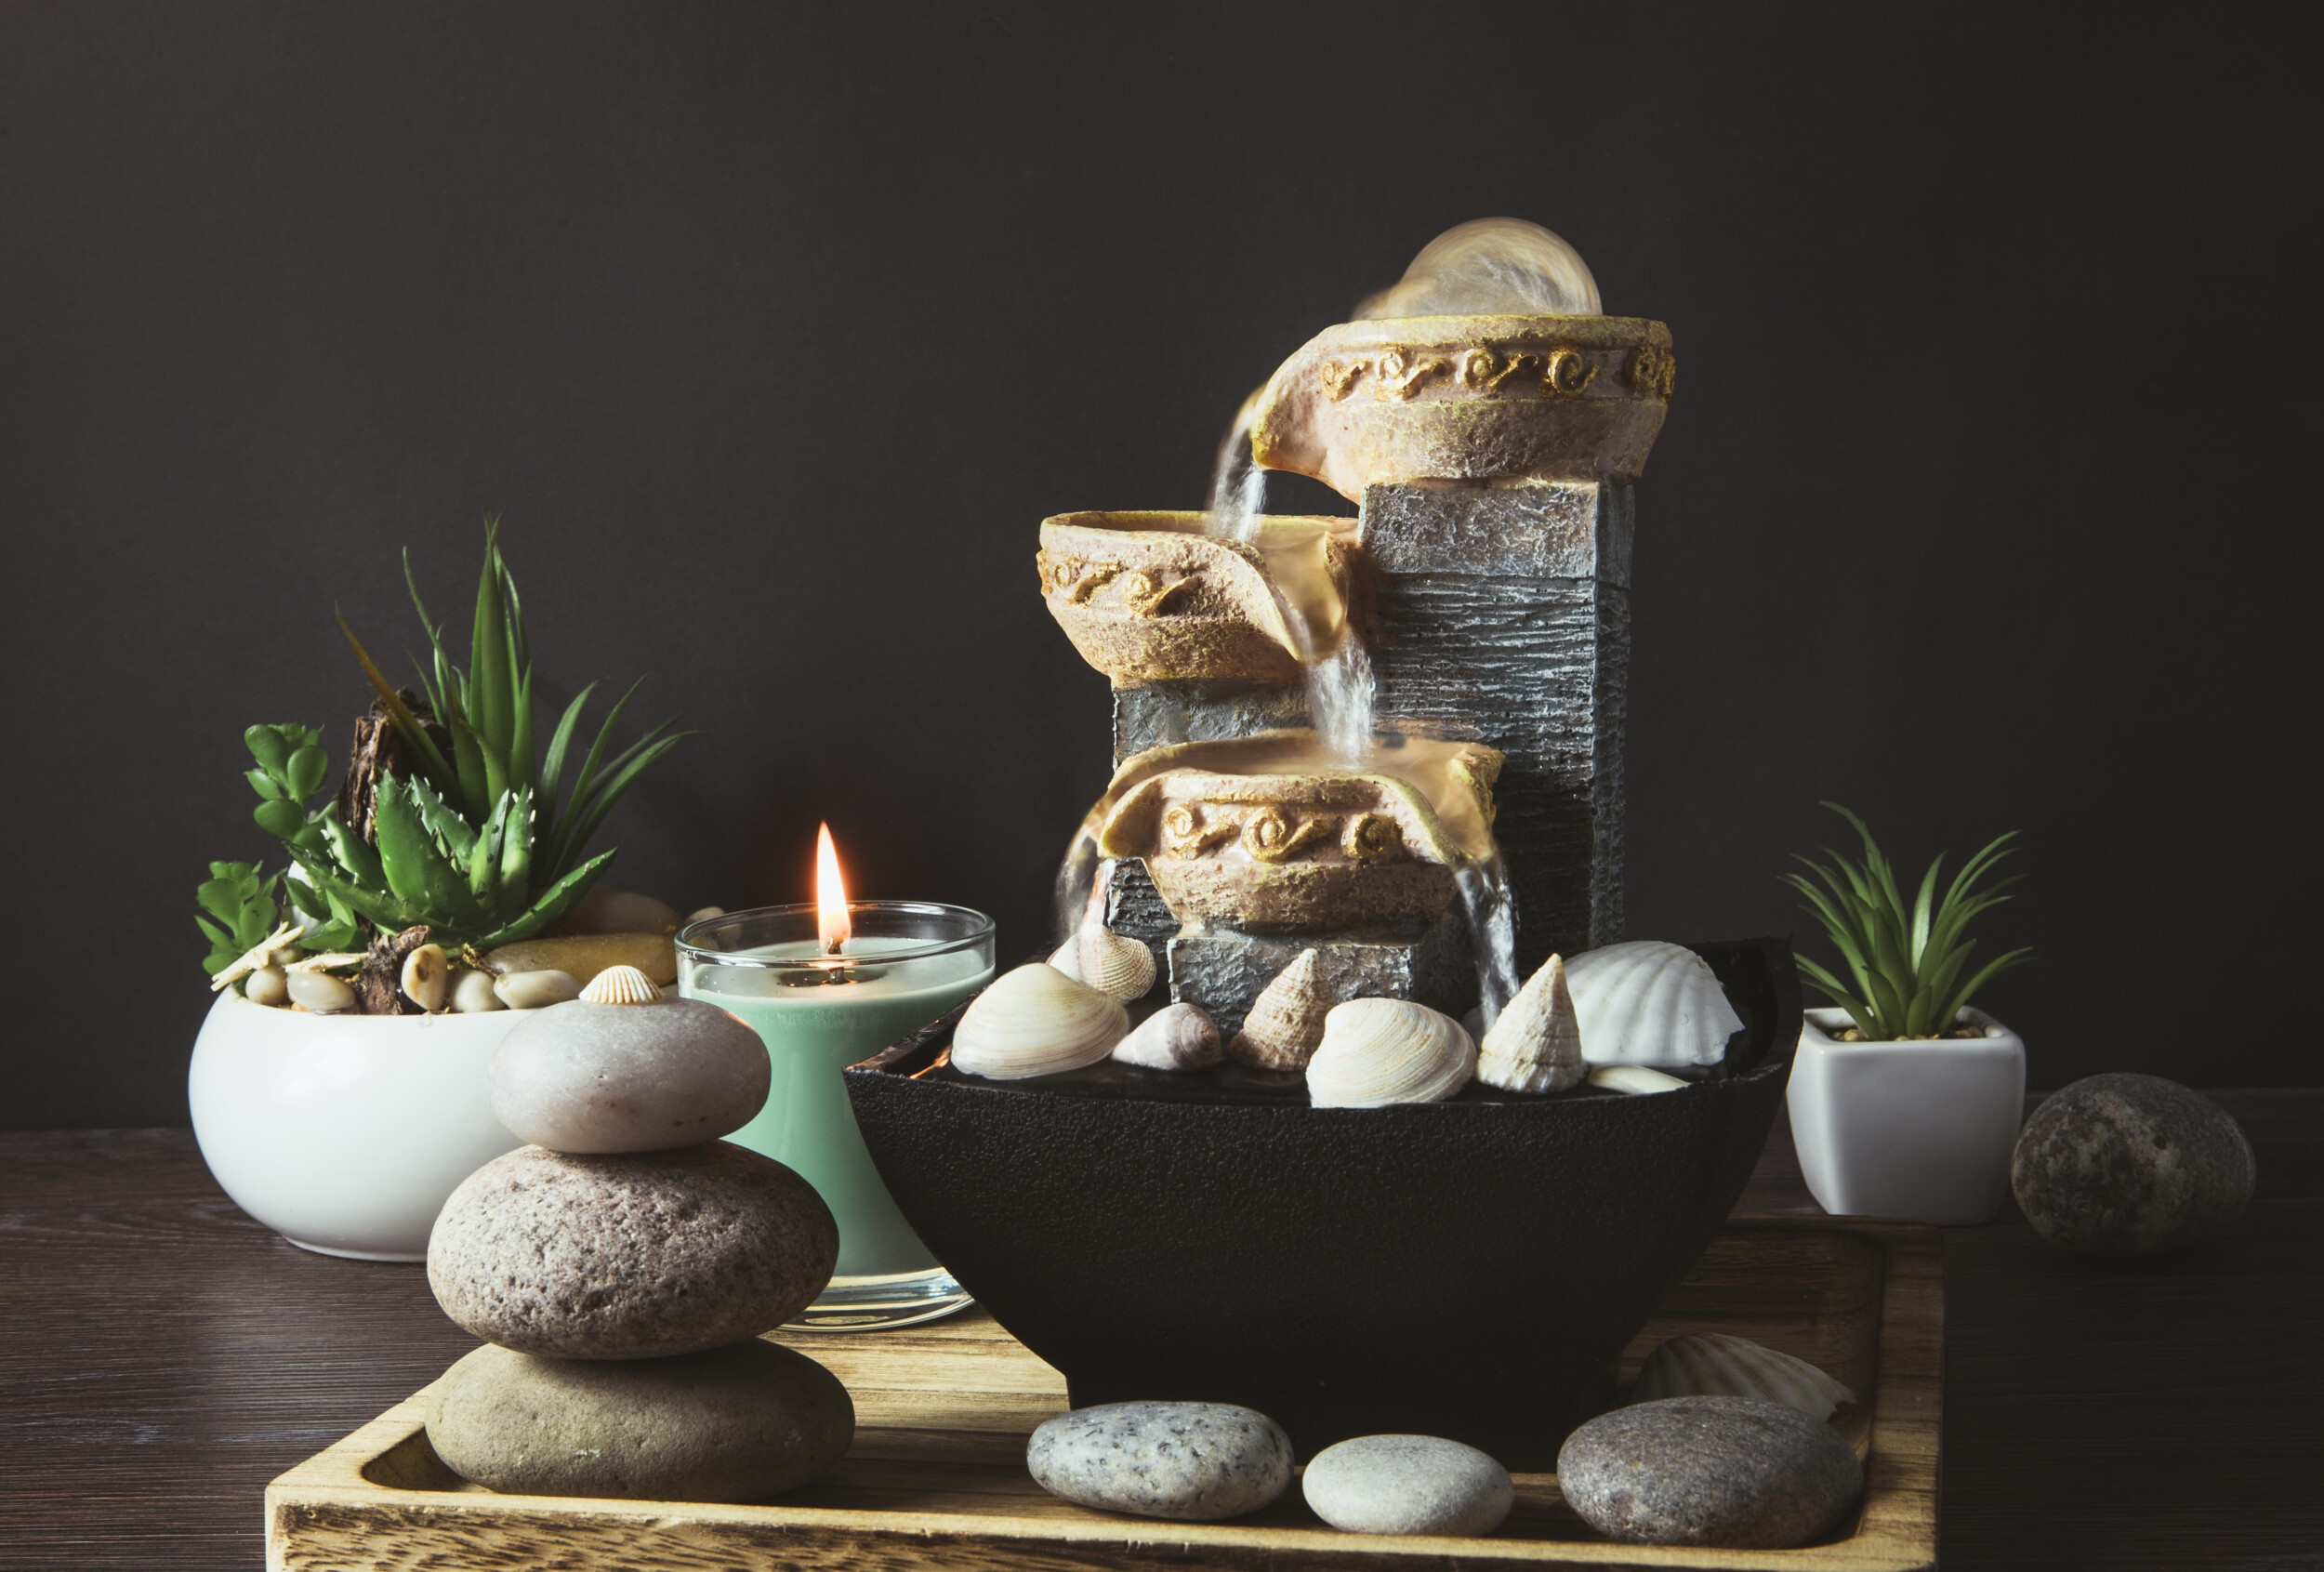 Portable indoor fountain for good Feng Shui in Your Home